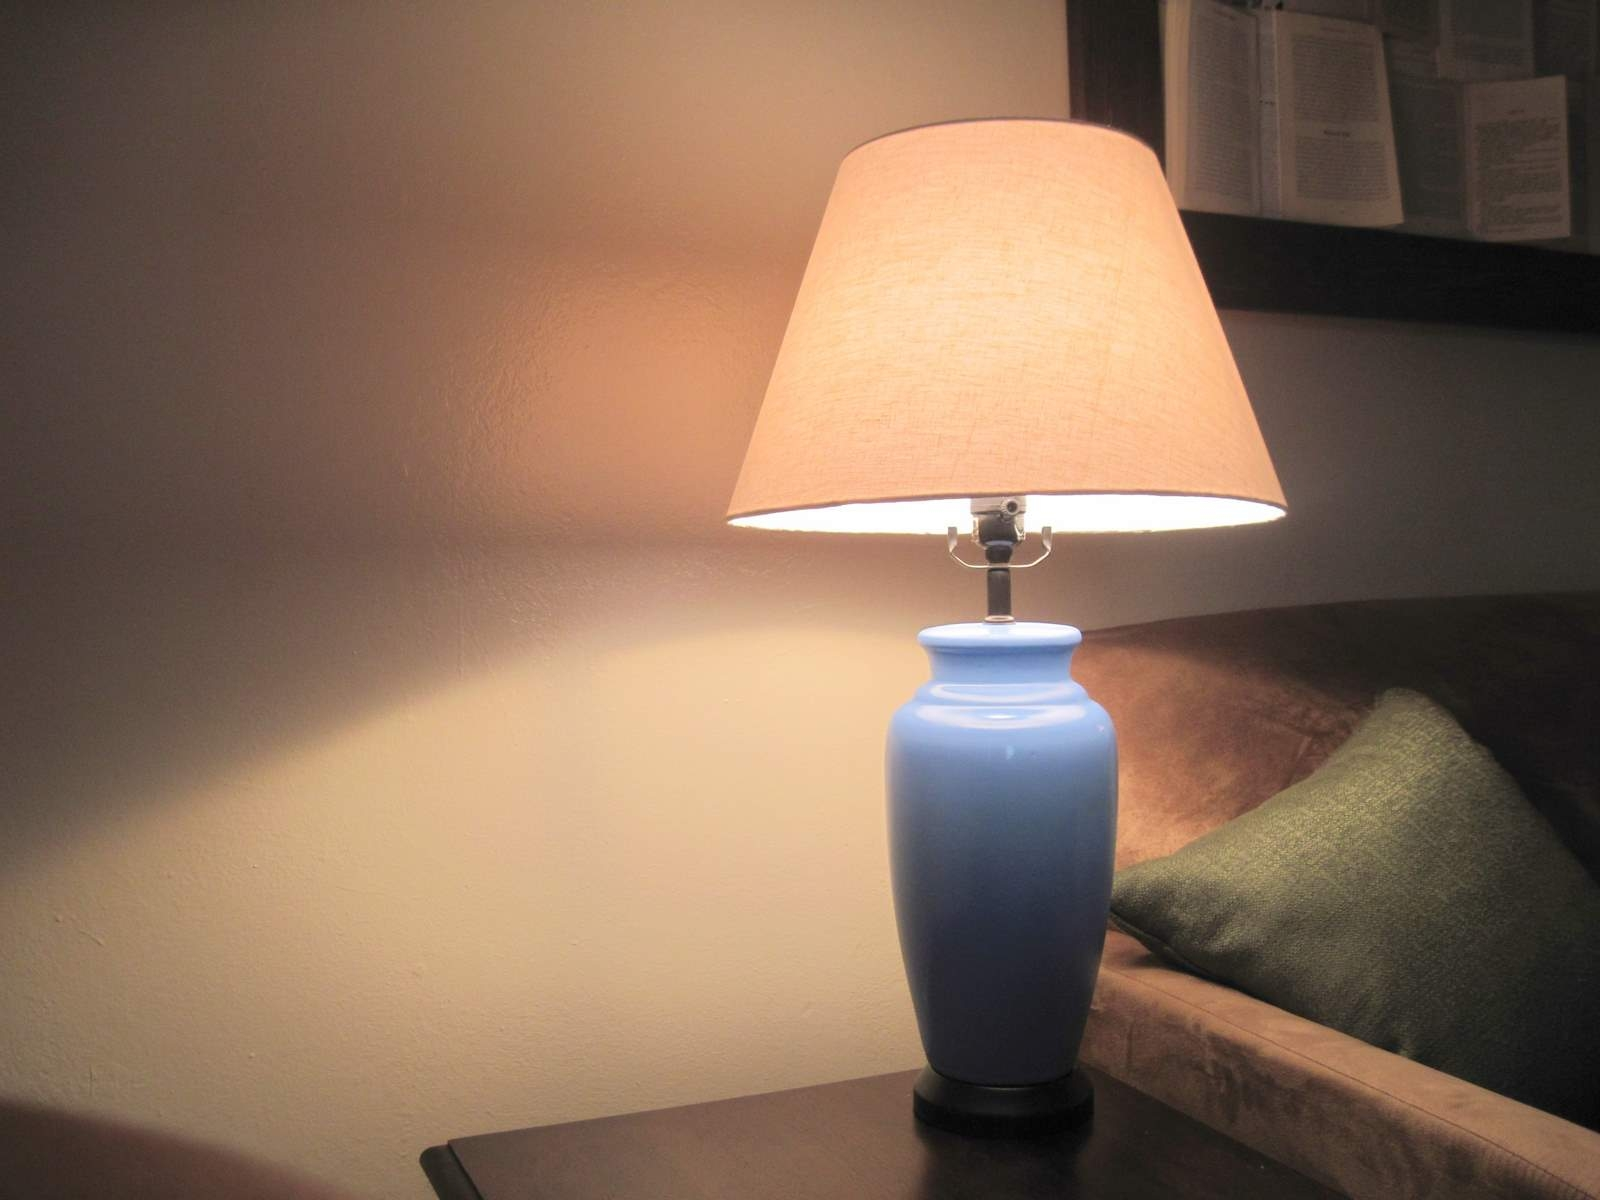 living room lamp project